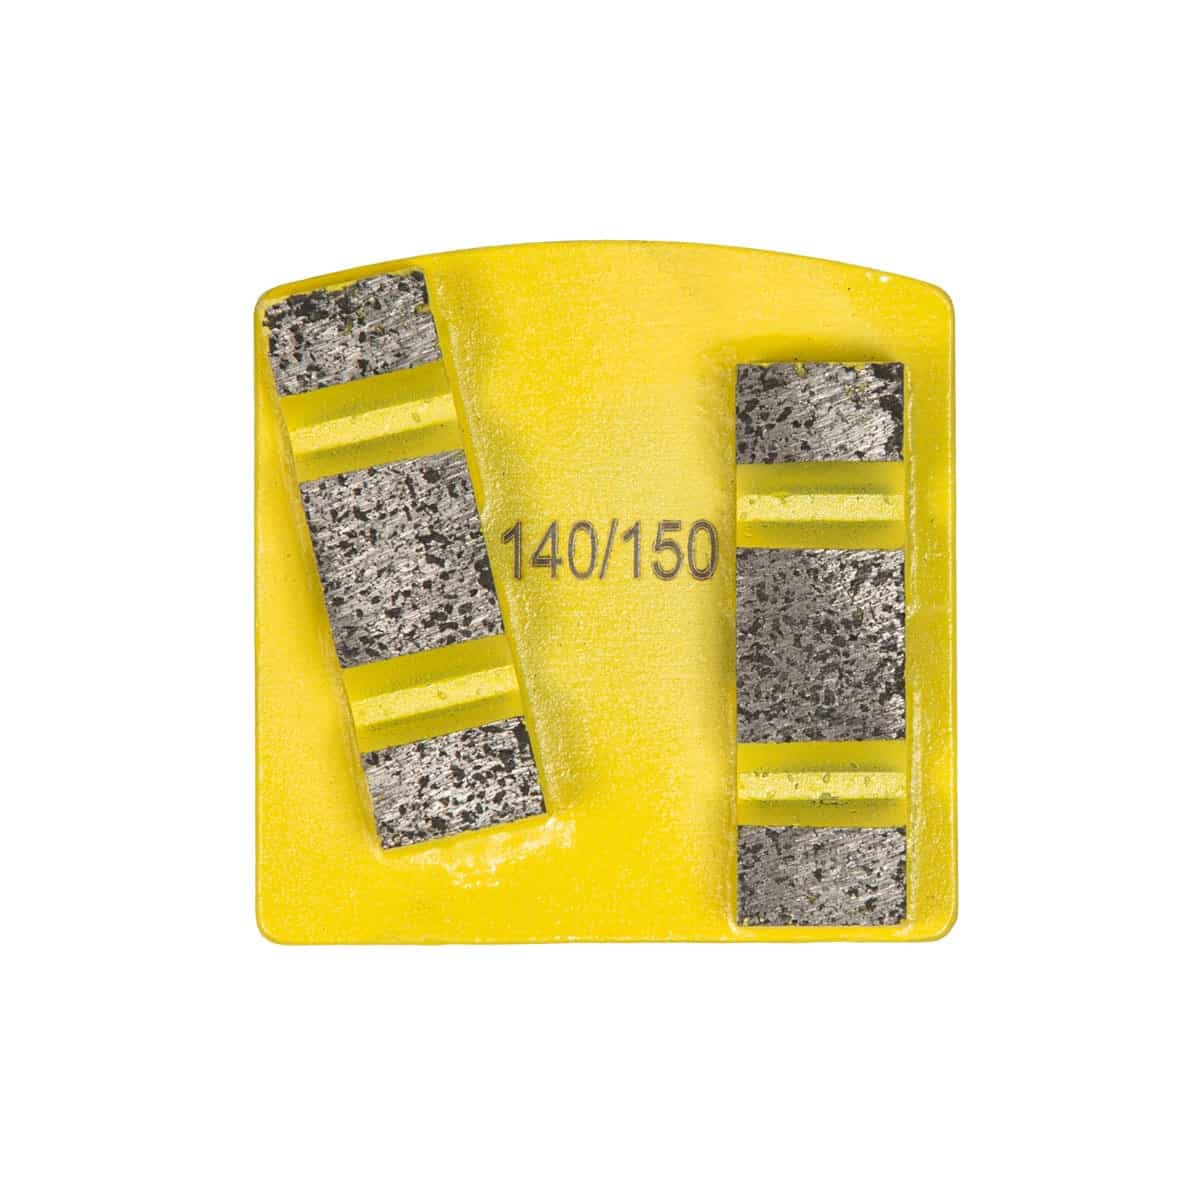 Scanmaskin World Series Diamond 12mm Double Yellow Super Soft Concrete Grinding Tool